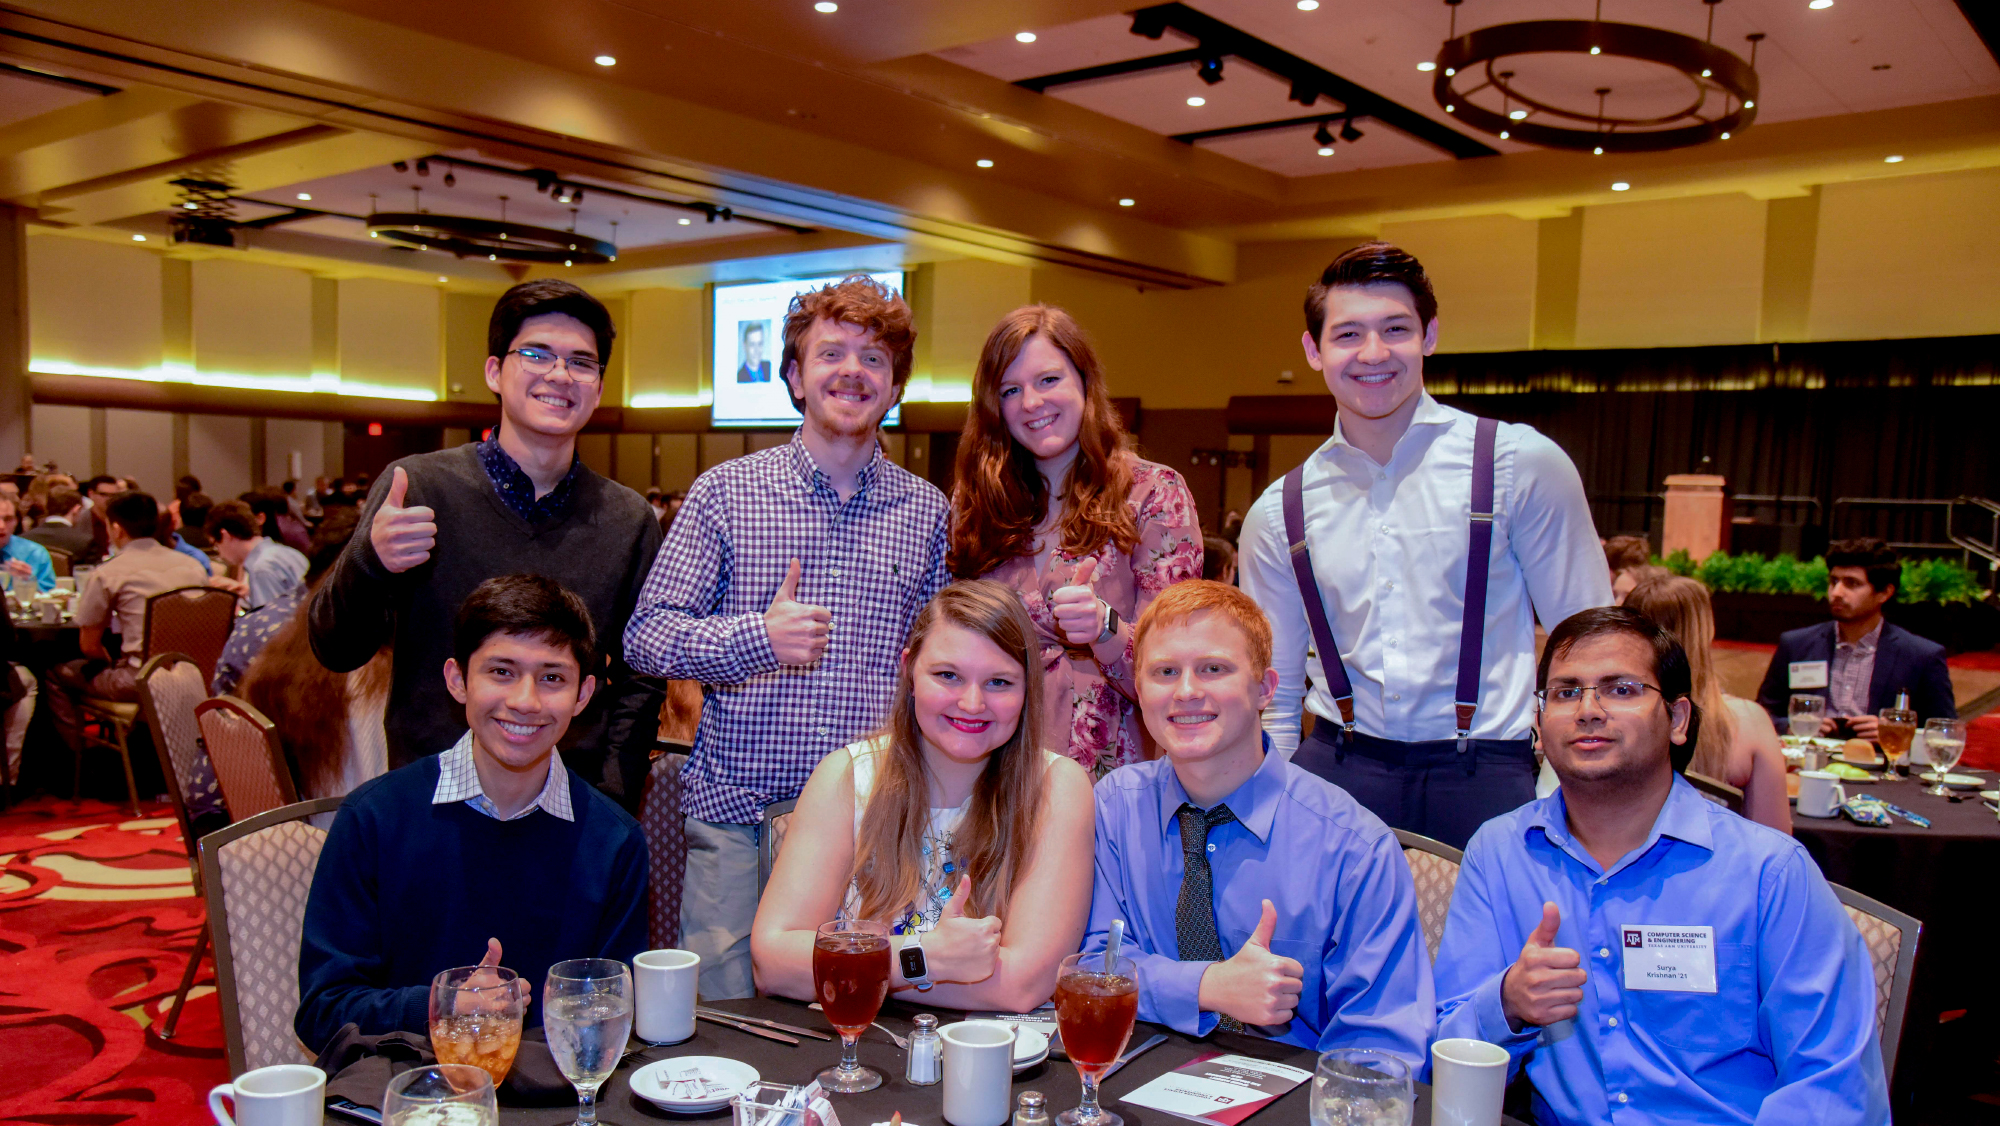 A group of students at the spring banquet dinner giving a Gig 'Em sign.